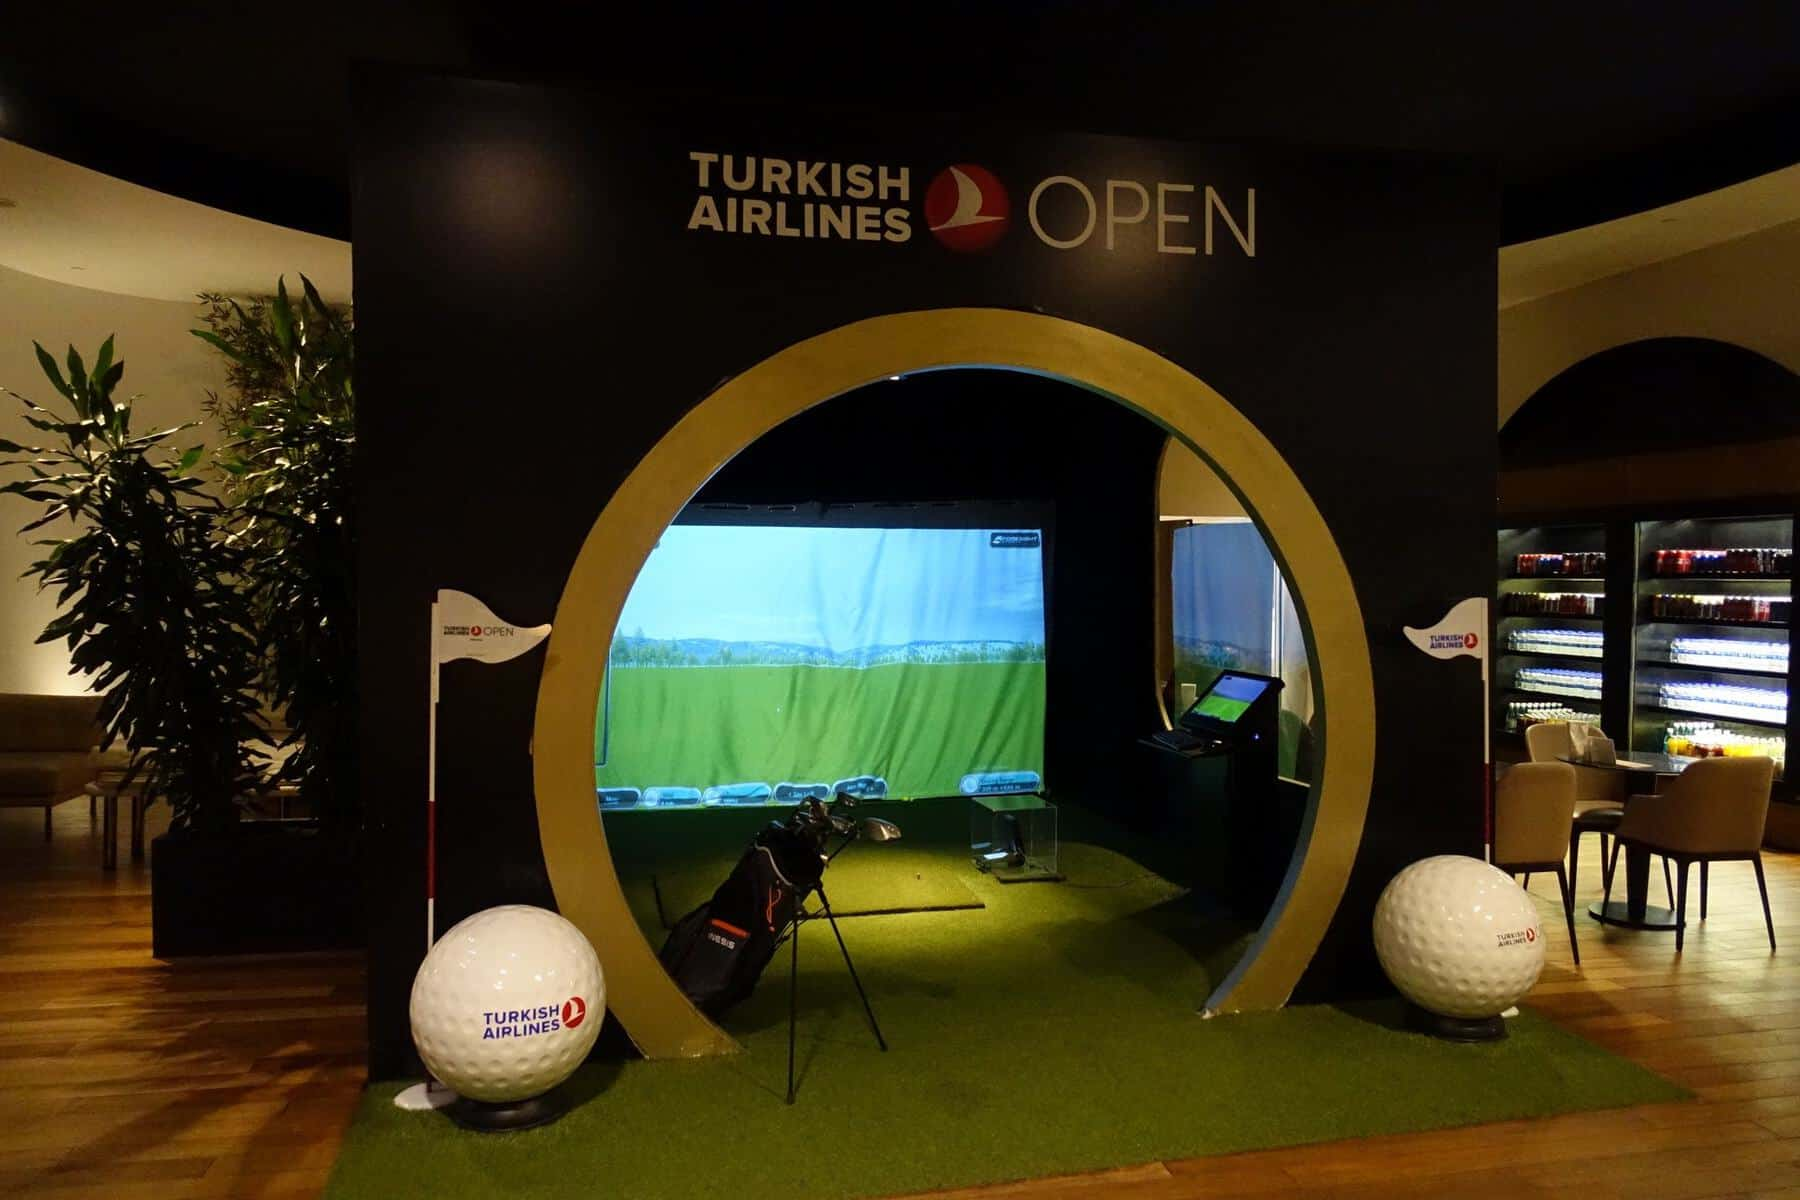 turkish airlines cip lounge 20